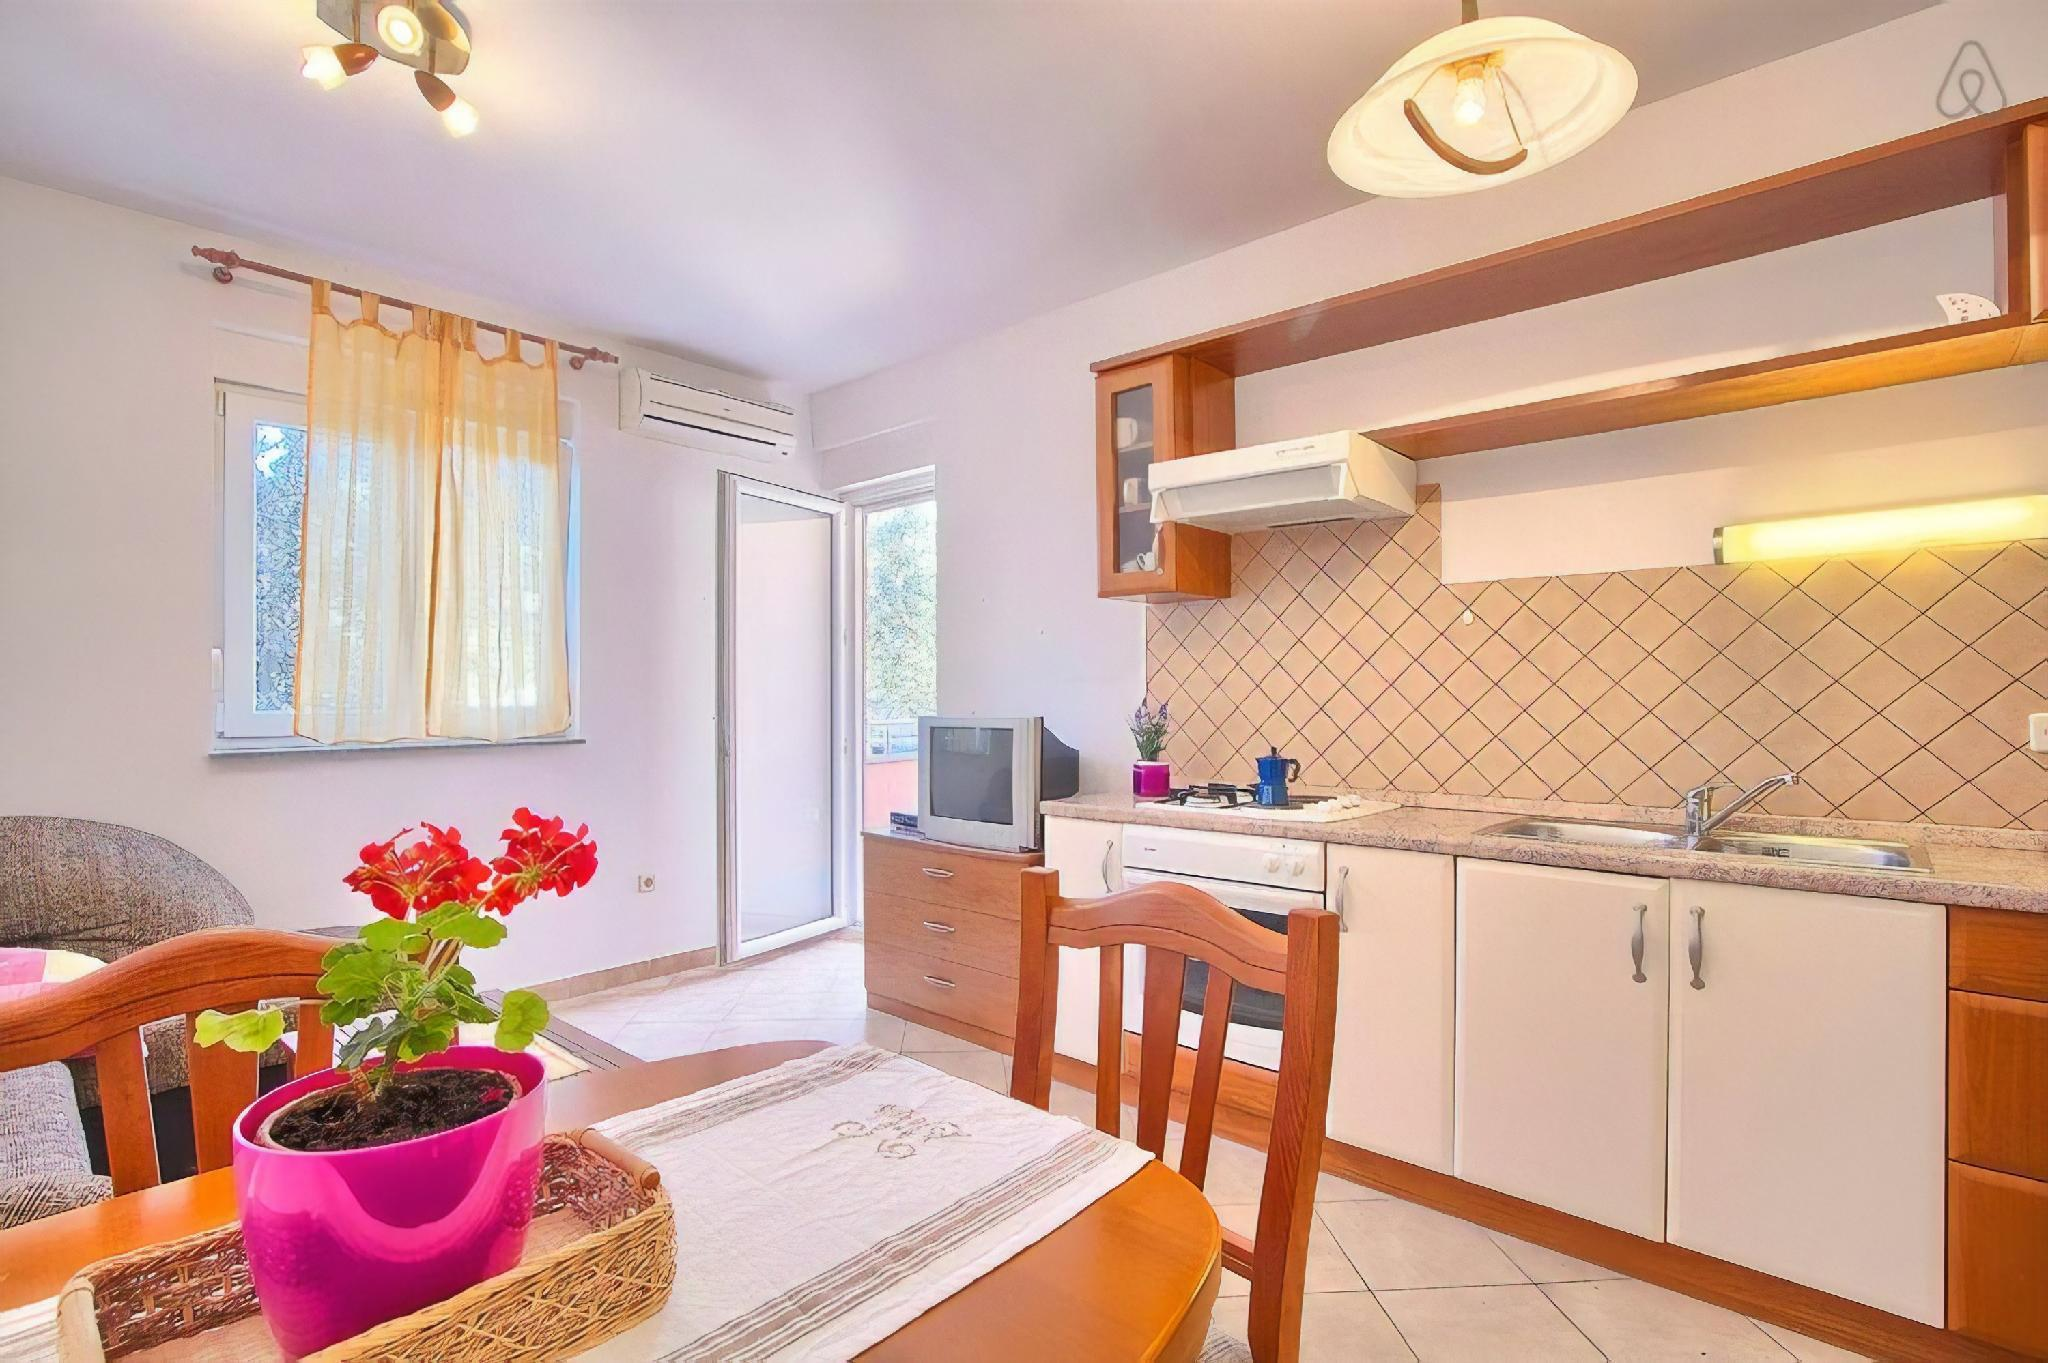 80m2 | doublebedroom| private parking | Airco